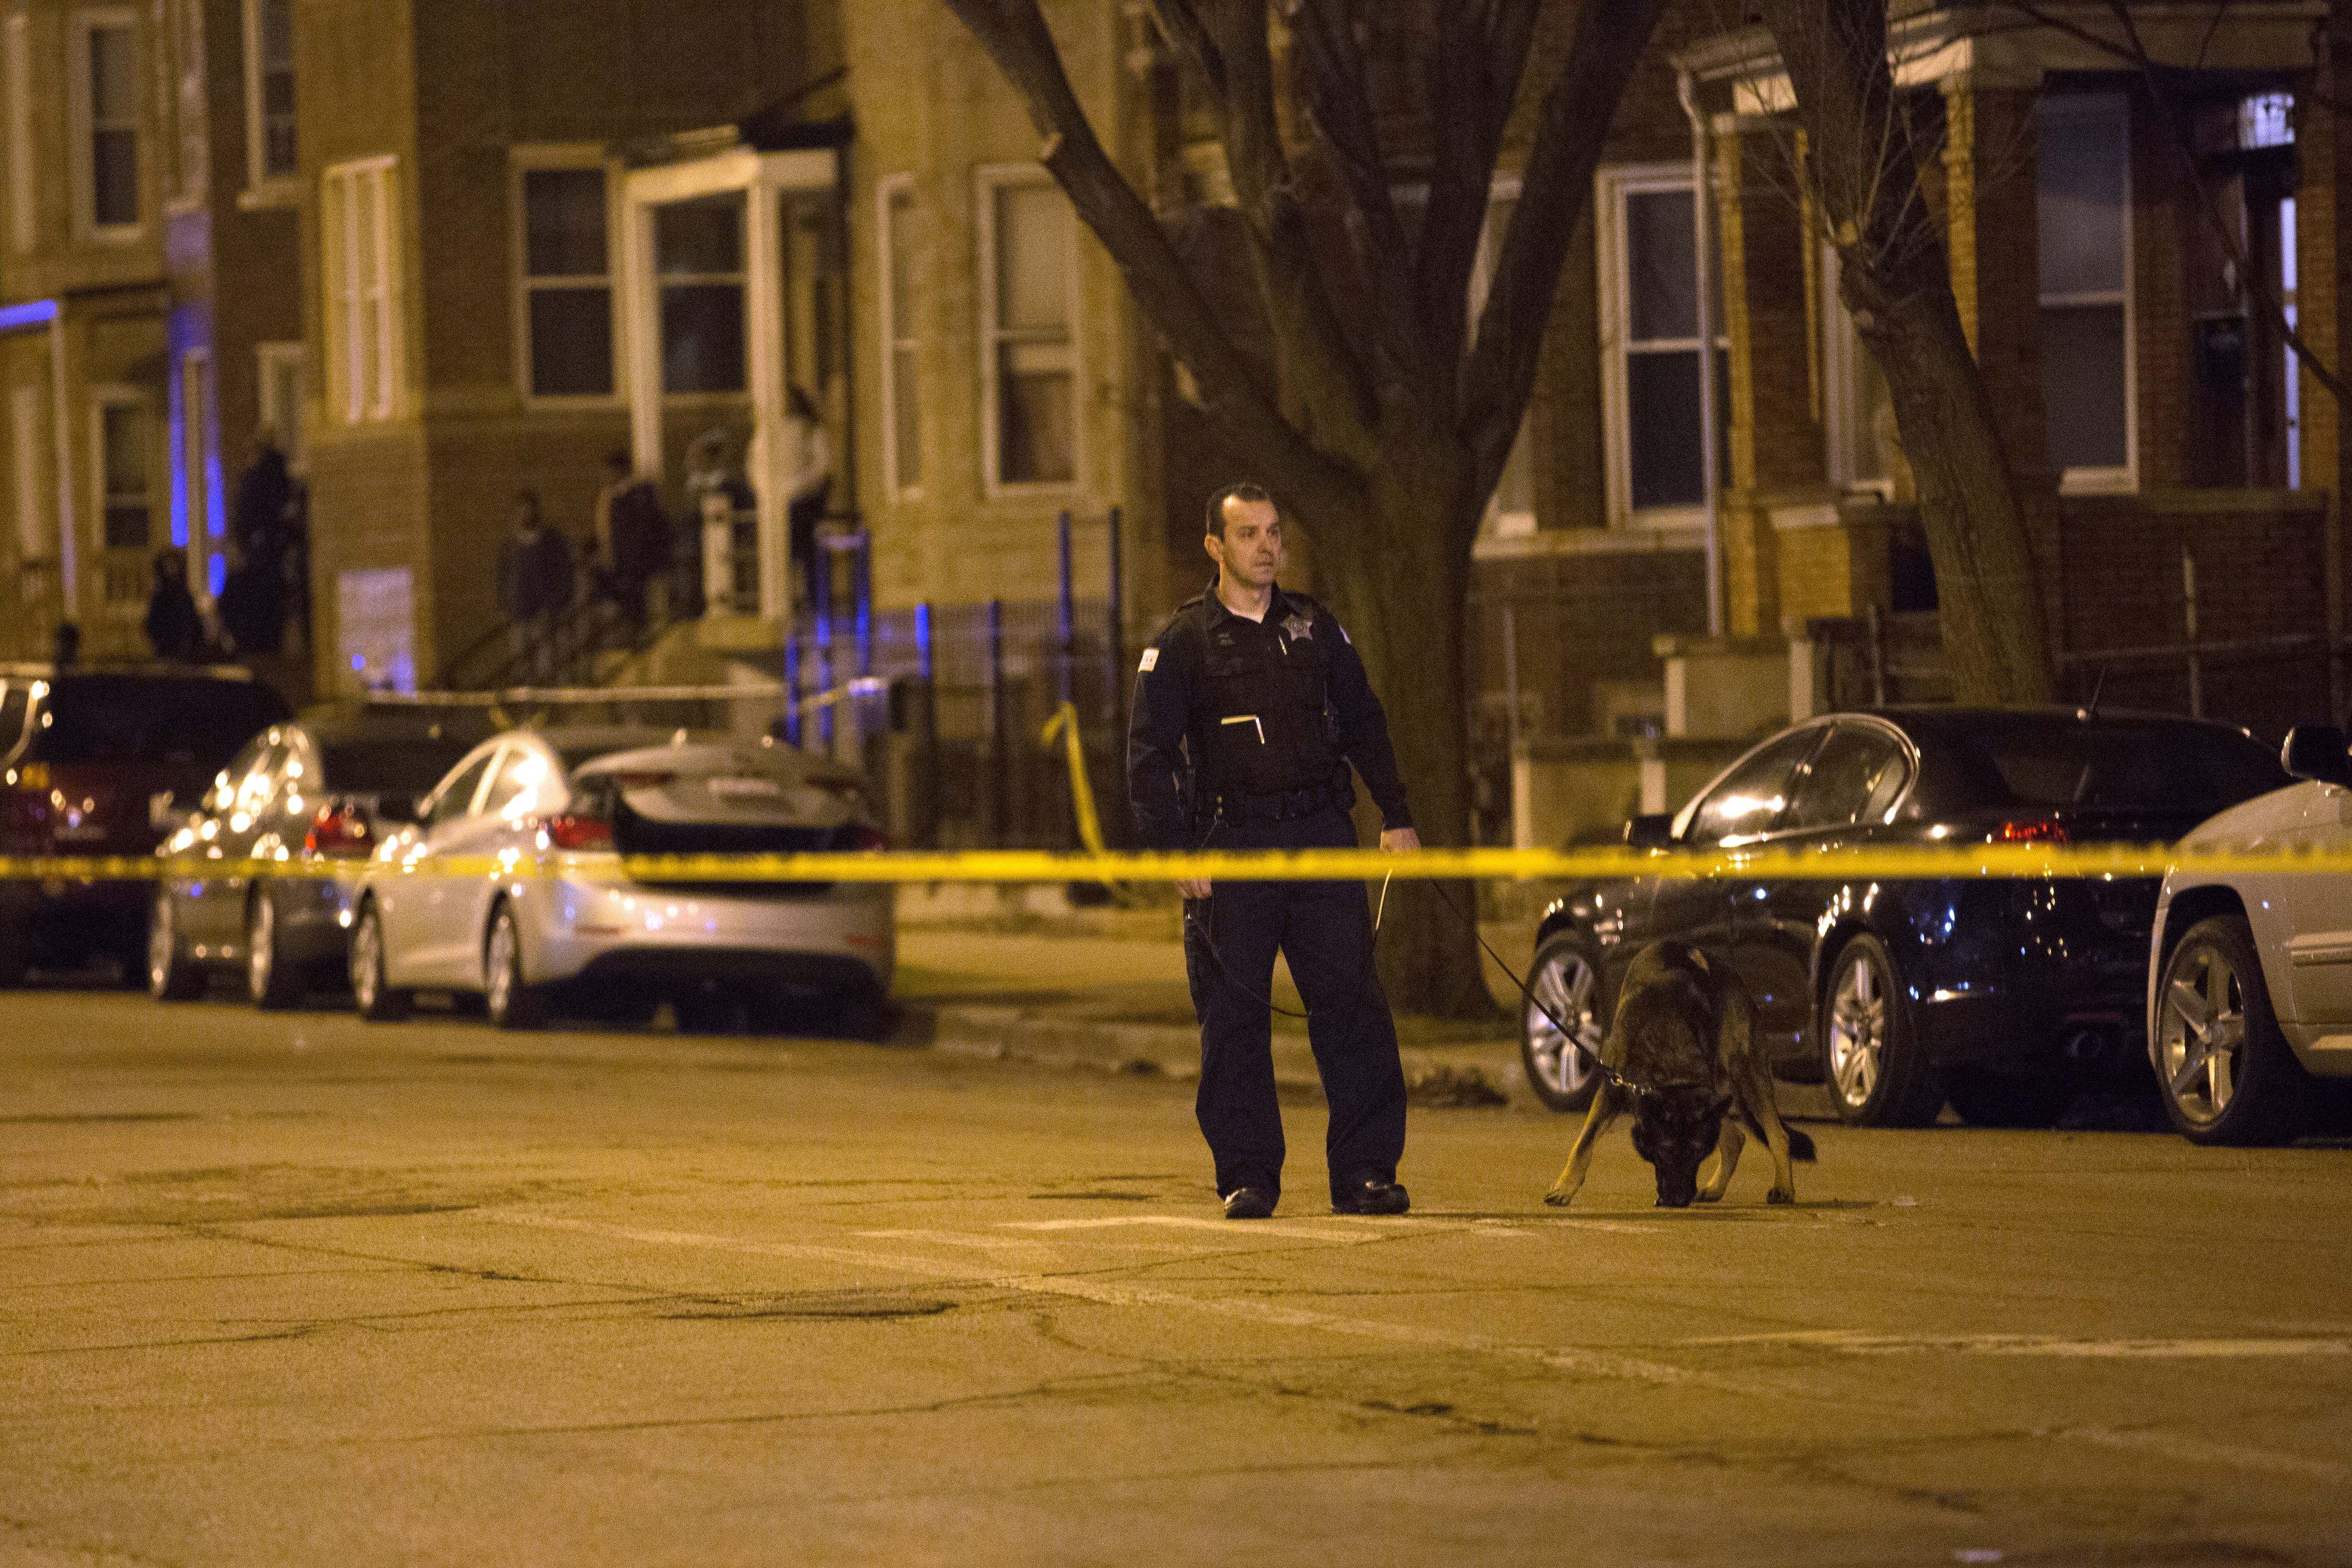 Chicago Shootings: 9 Dead, 43 Wounded in Weekend Violence